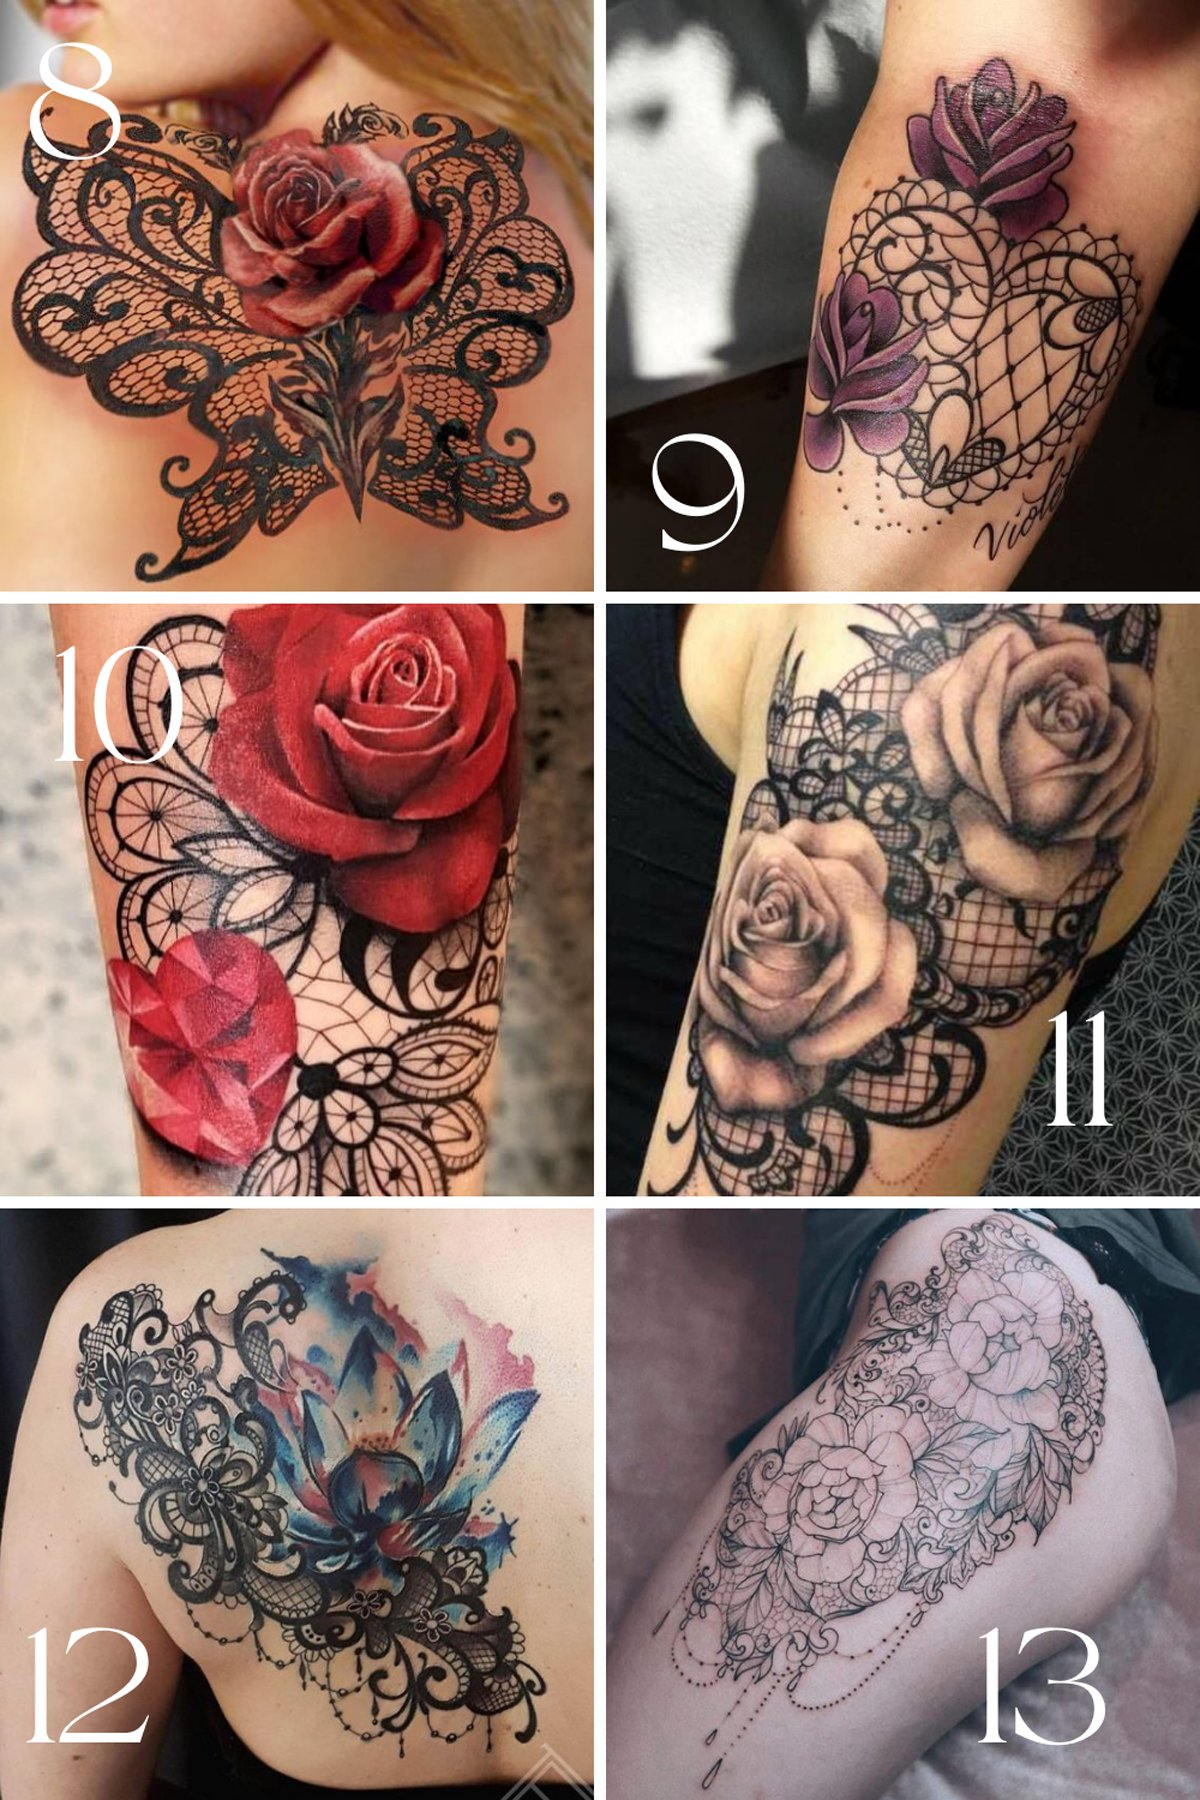 Flower and lace tattoo sleeve designs